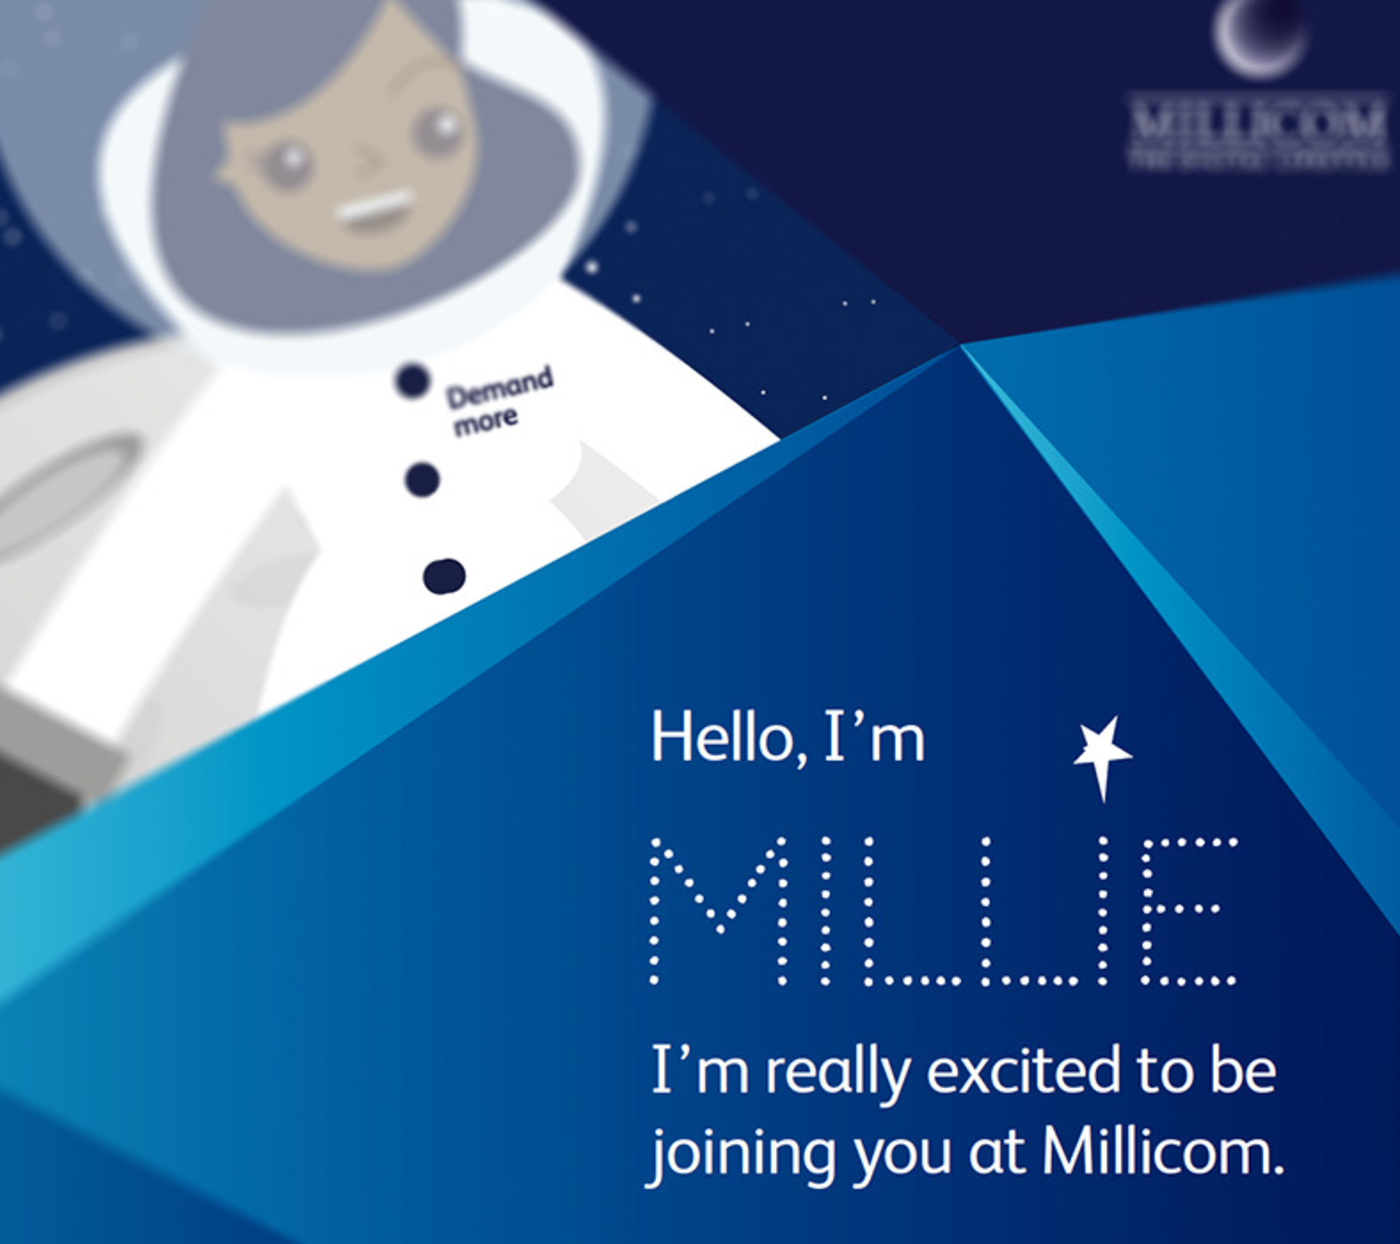 Creative internal comms ideas to re-energise employees case study 3: Millicom